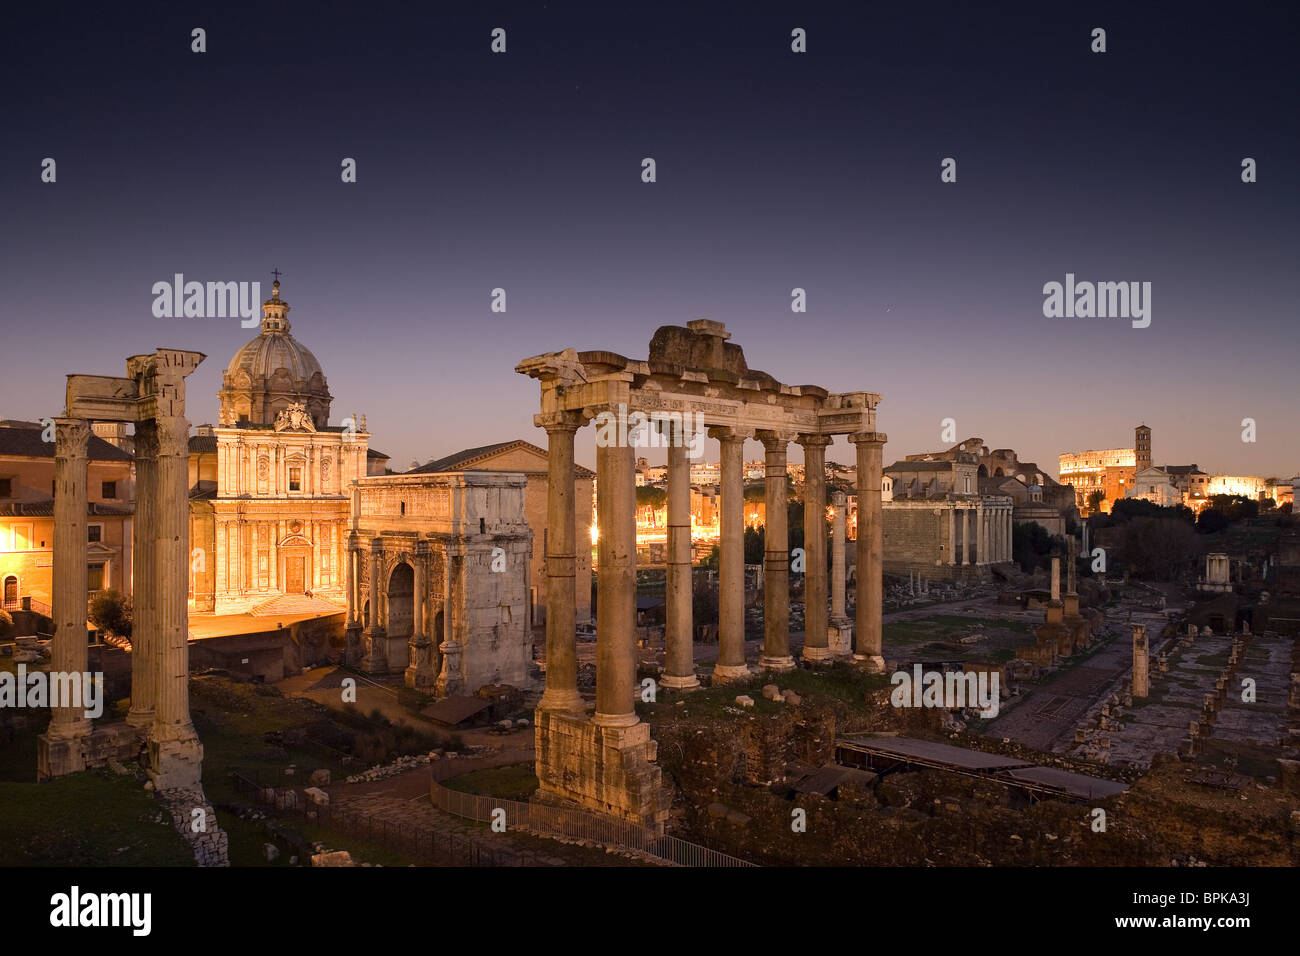 Stock Photo   View From Piazza Del Campidoglio Towards Temple Of Saturn And  Arch Of Septimius Severus, Roman Forum, Rome, Italy, Europe